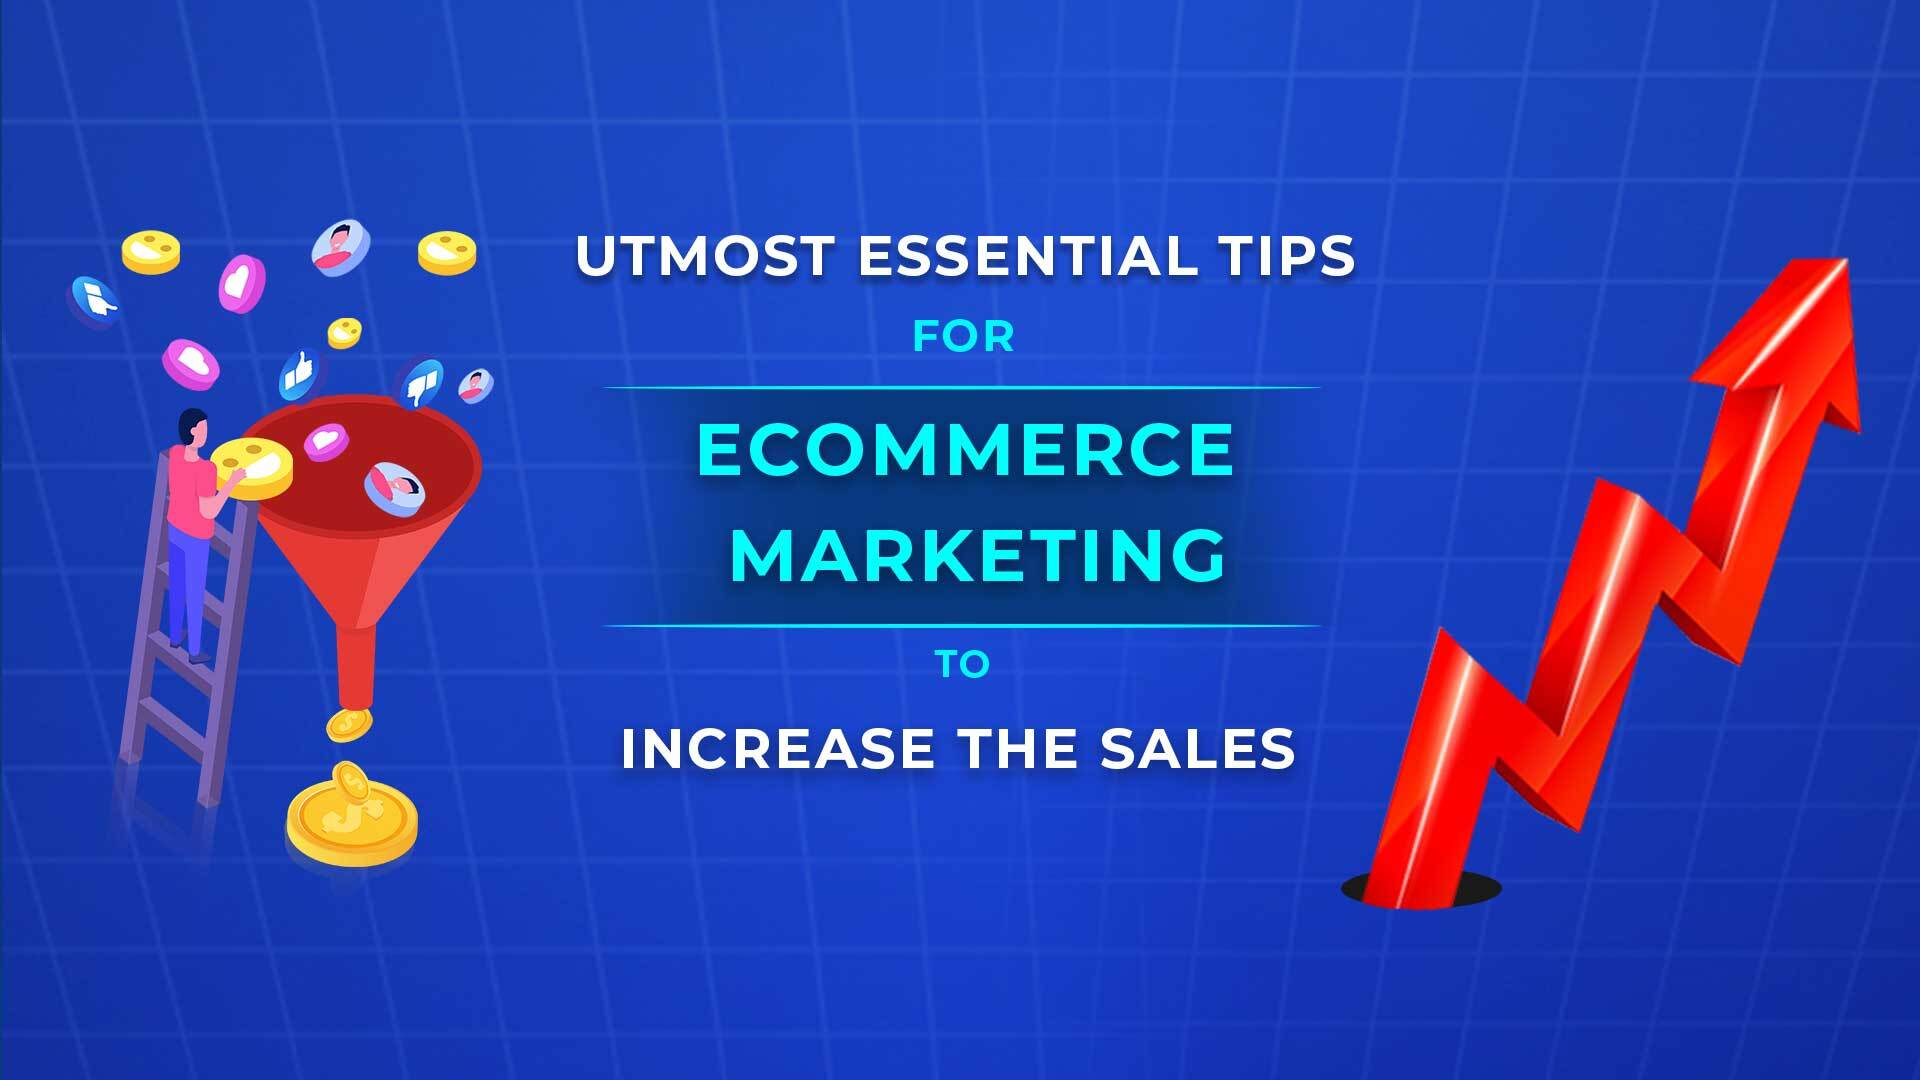 Utmost Essential Tips for Ecommerce Marketing to Increase the Sale